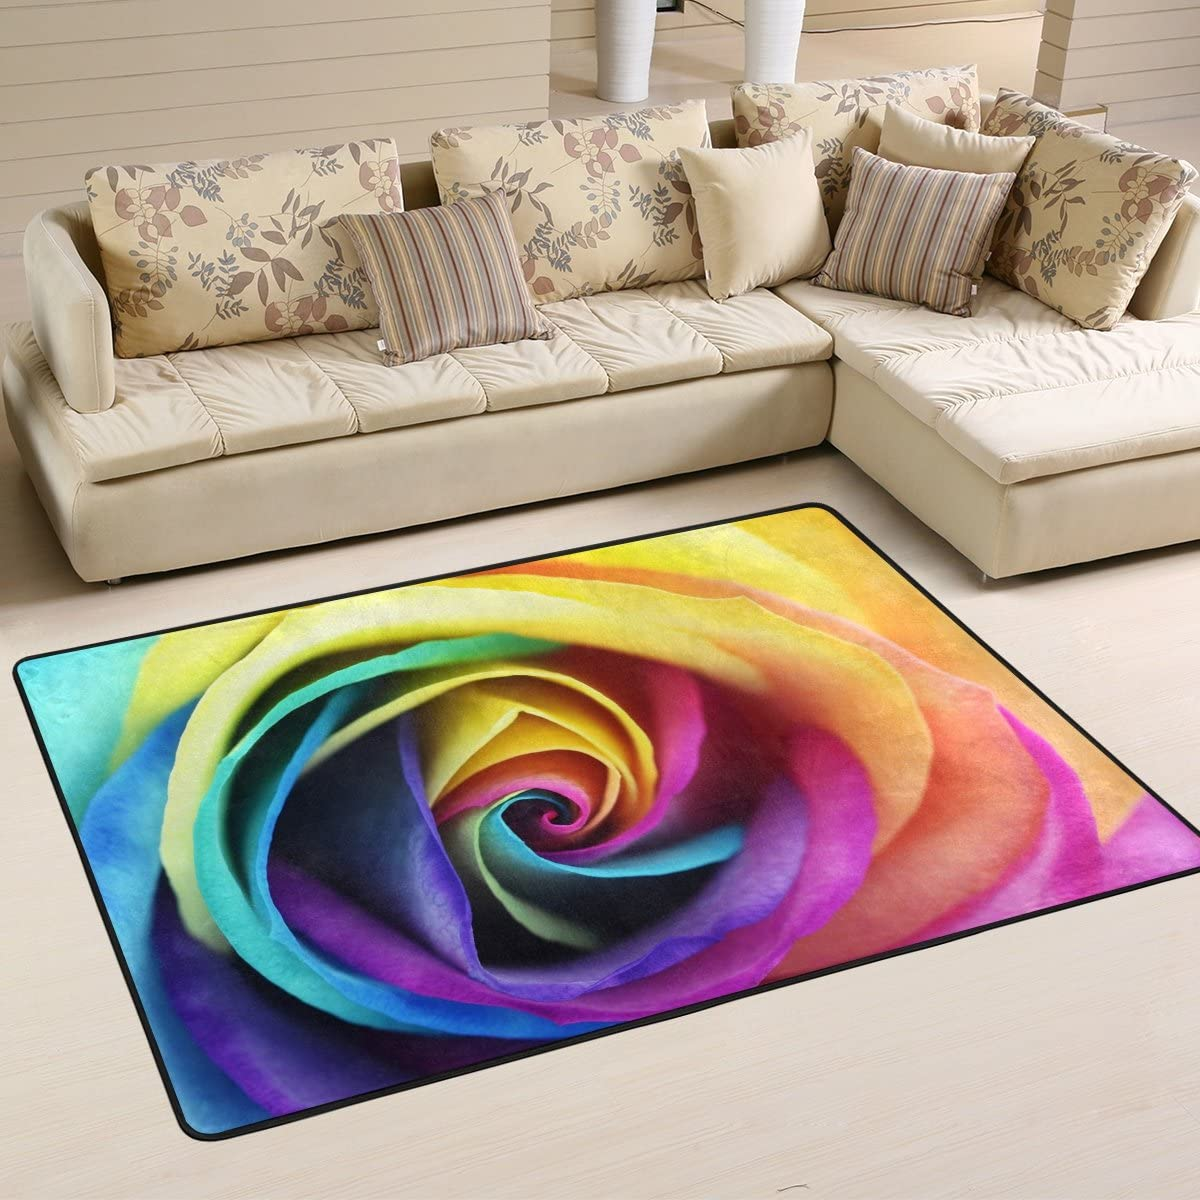 ALAZA Non Slip Area Rug Home Decor, Hipster Rainbow Rose Flower Durable Floor Mat Living Room Bedroom Carpets Doormats 72 x 48 inches